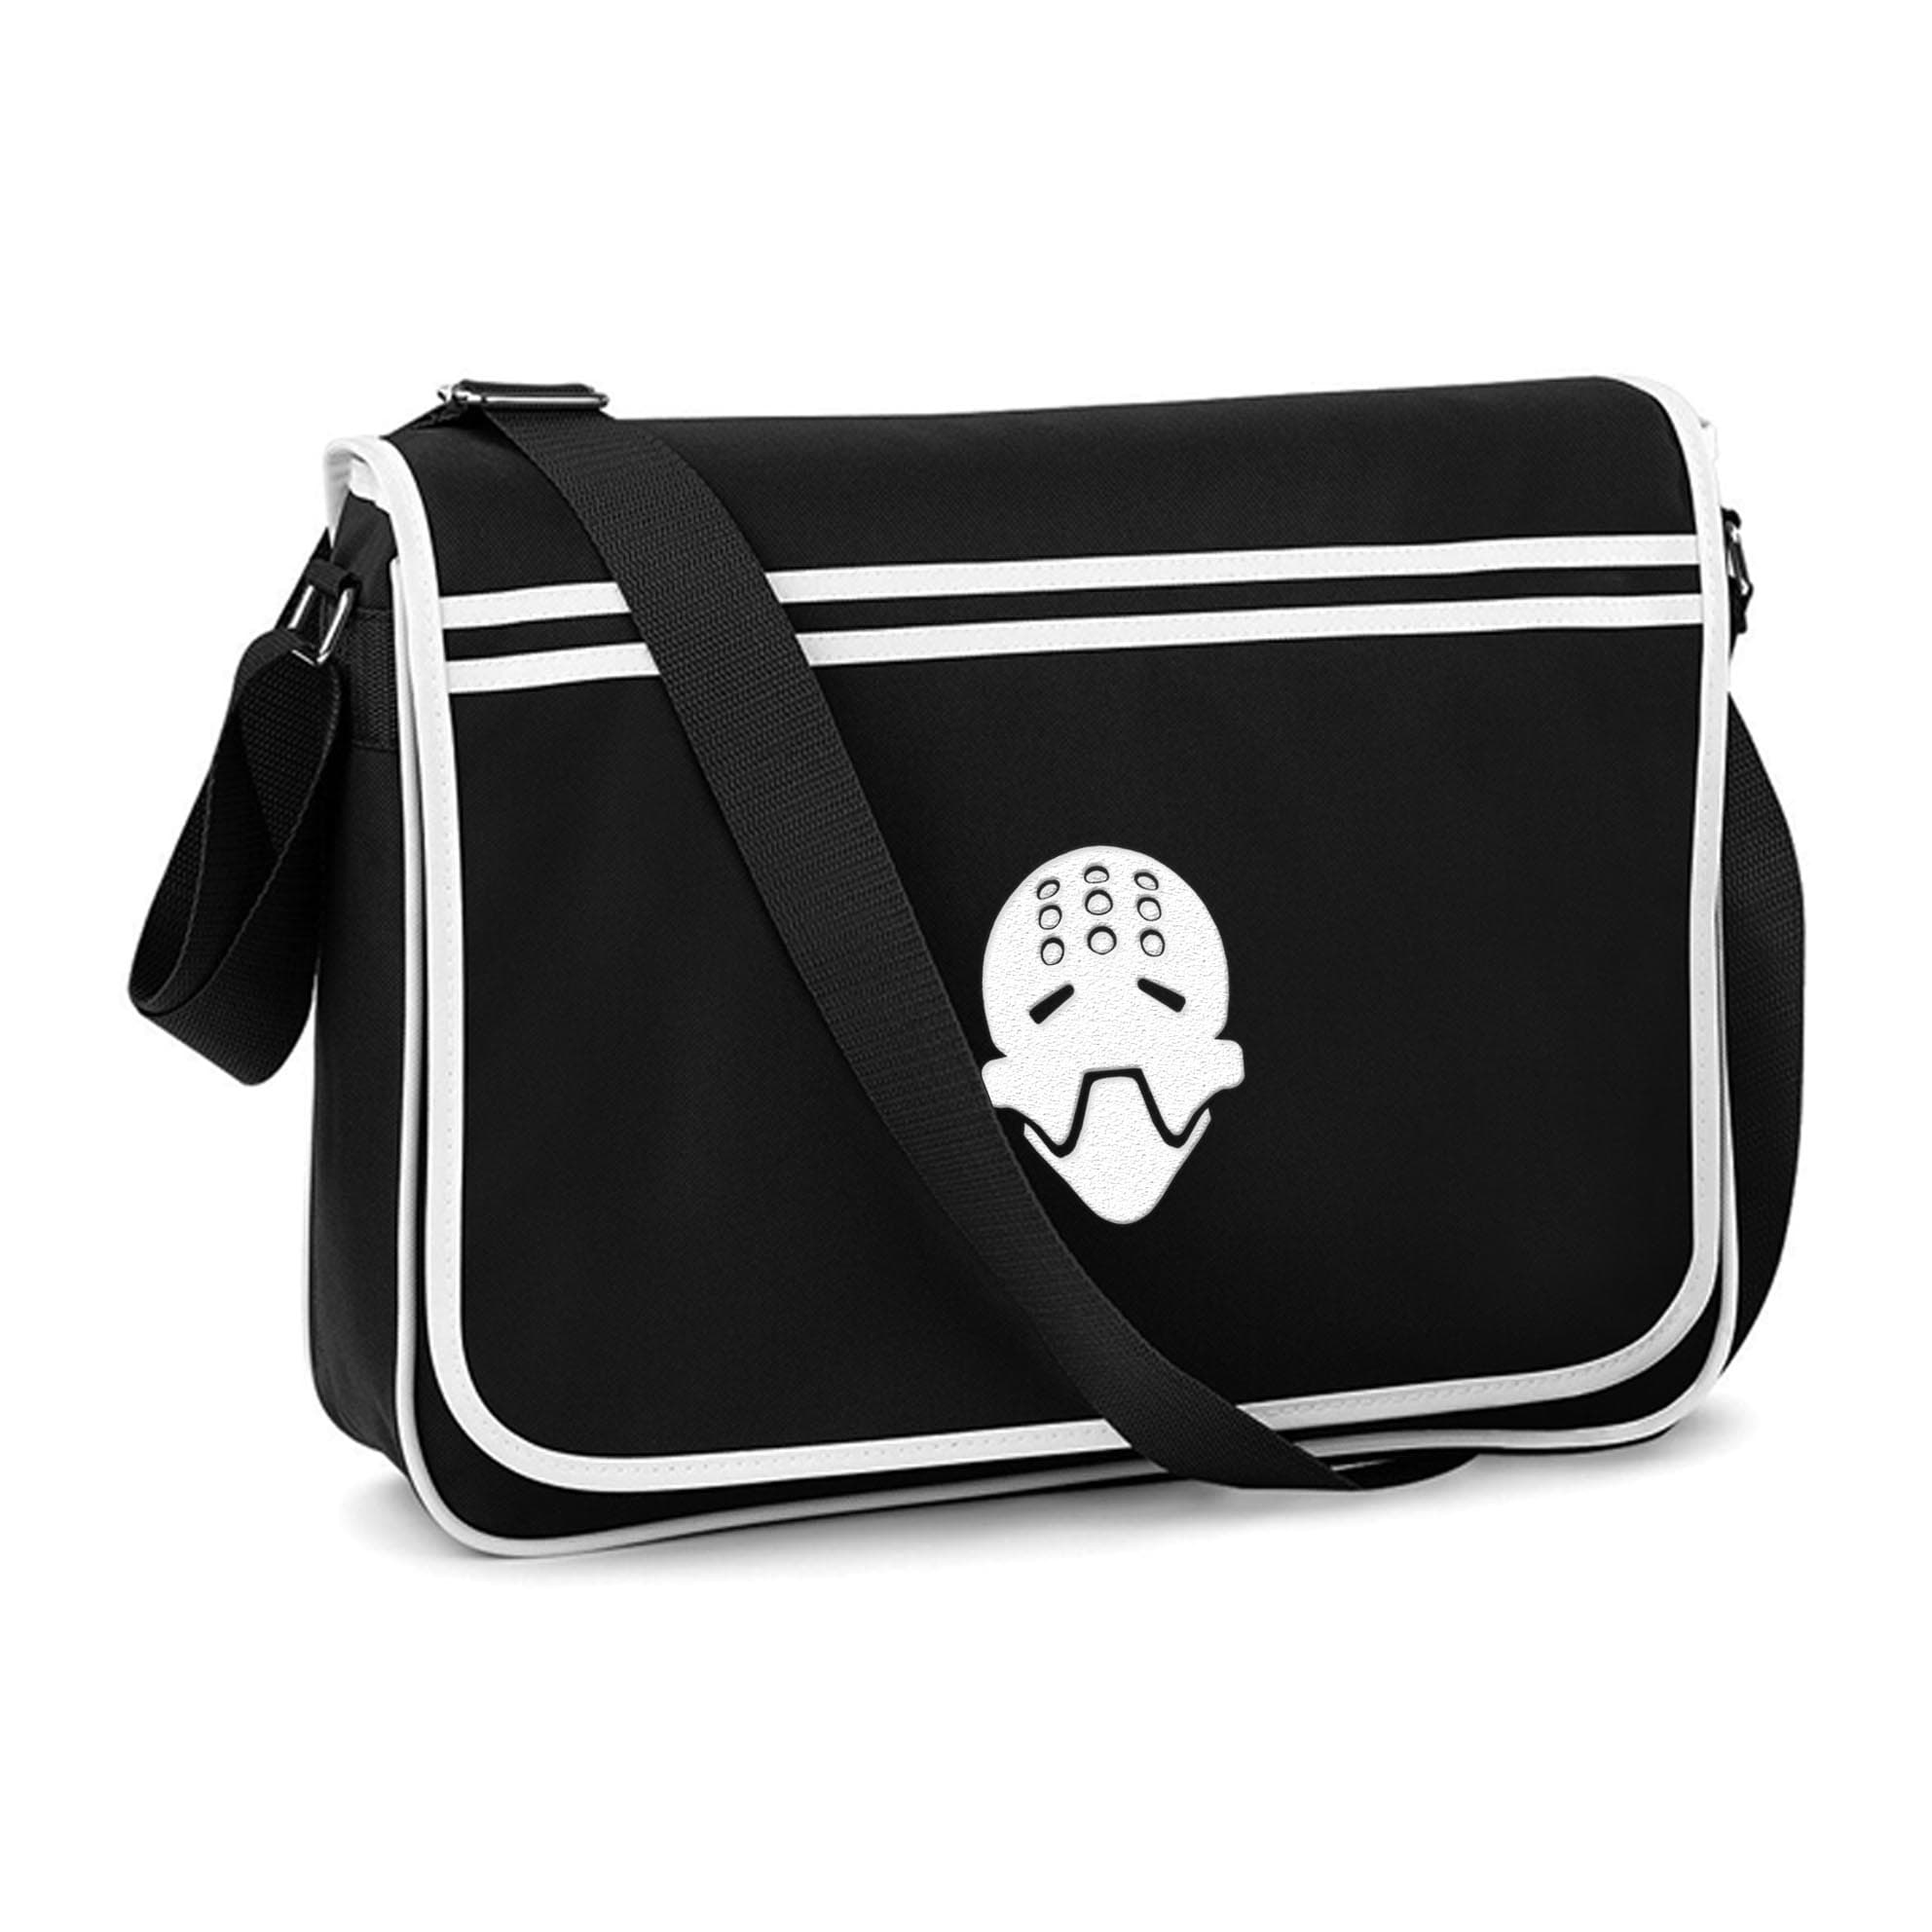 Overwatch Zenyetta Messenger Bag